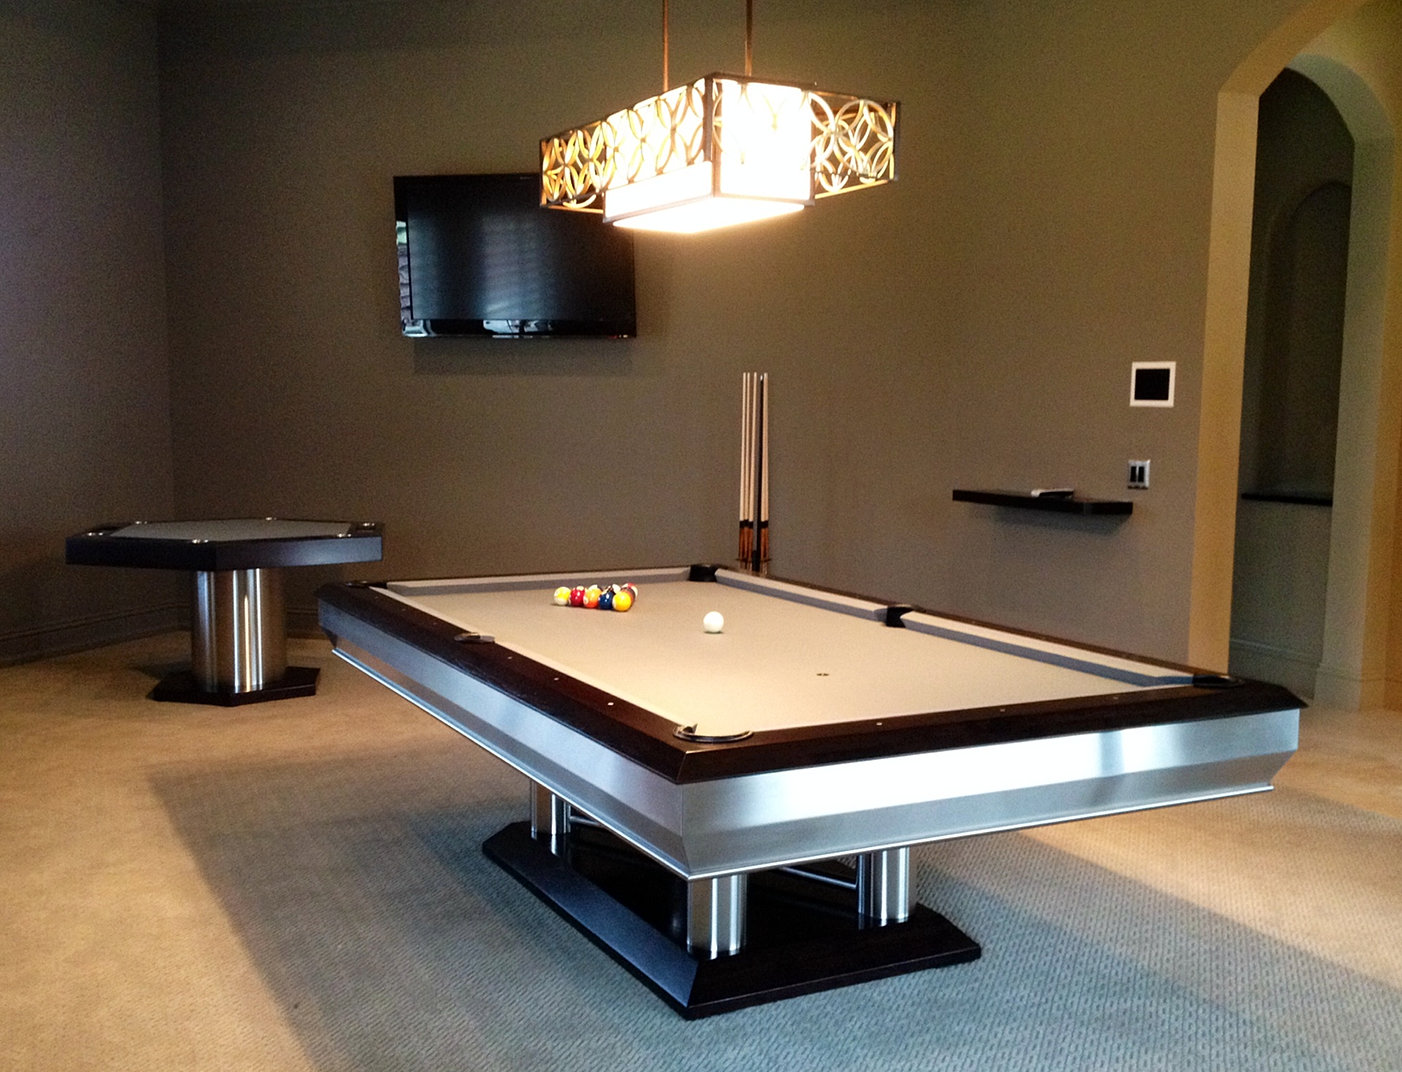 with hubble custom and tables sports gold from cloth bespoke omega pool table